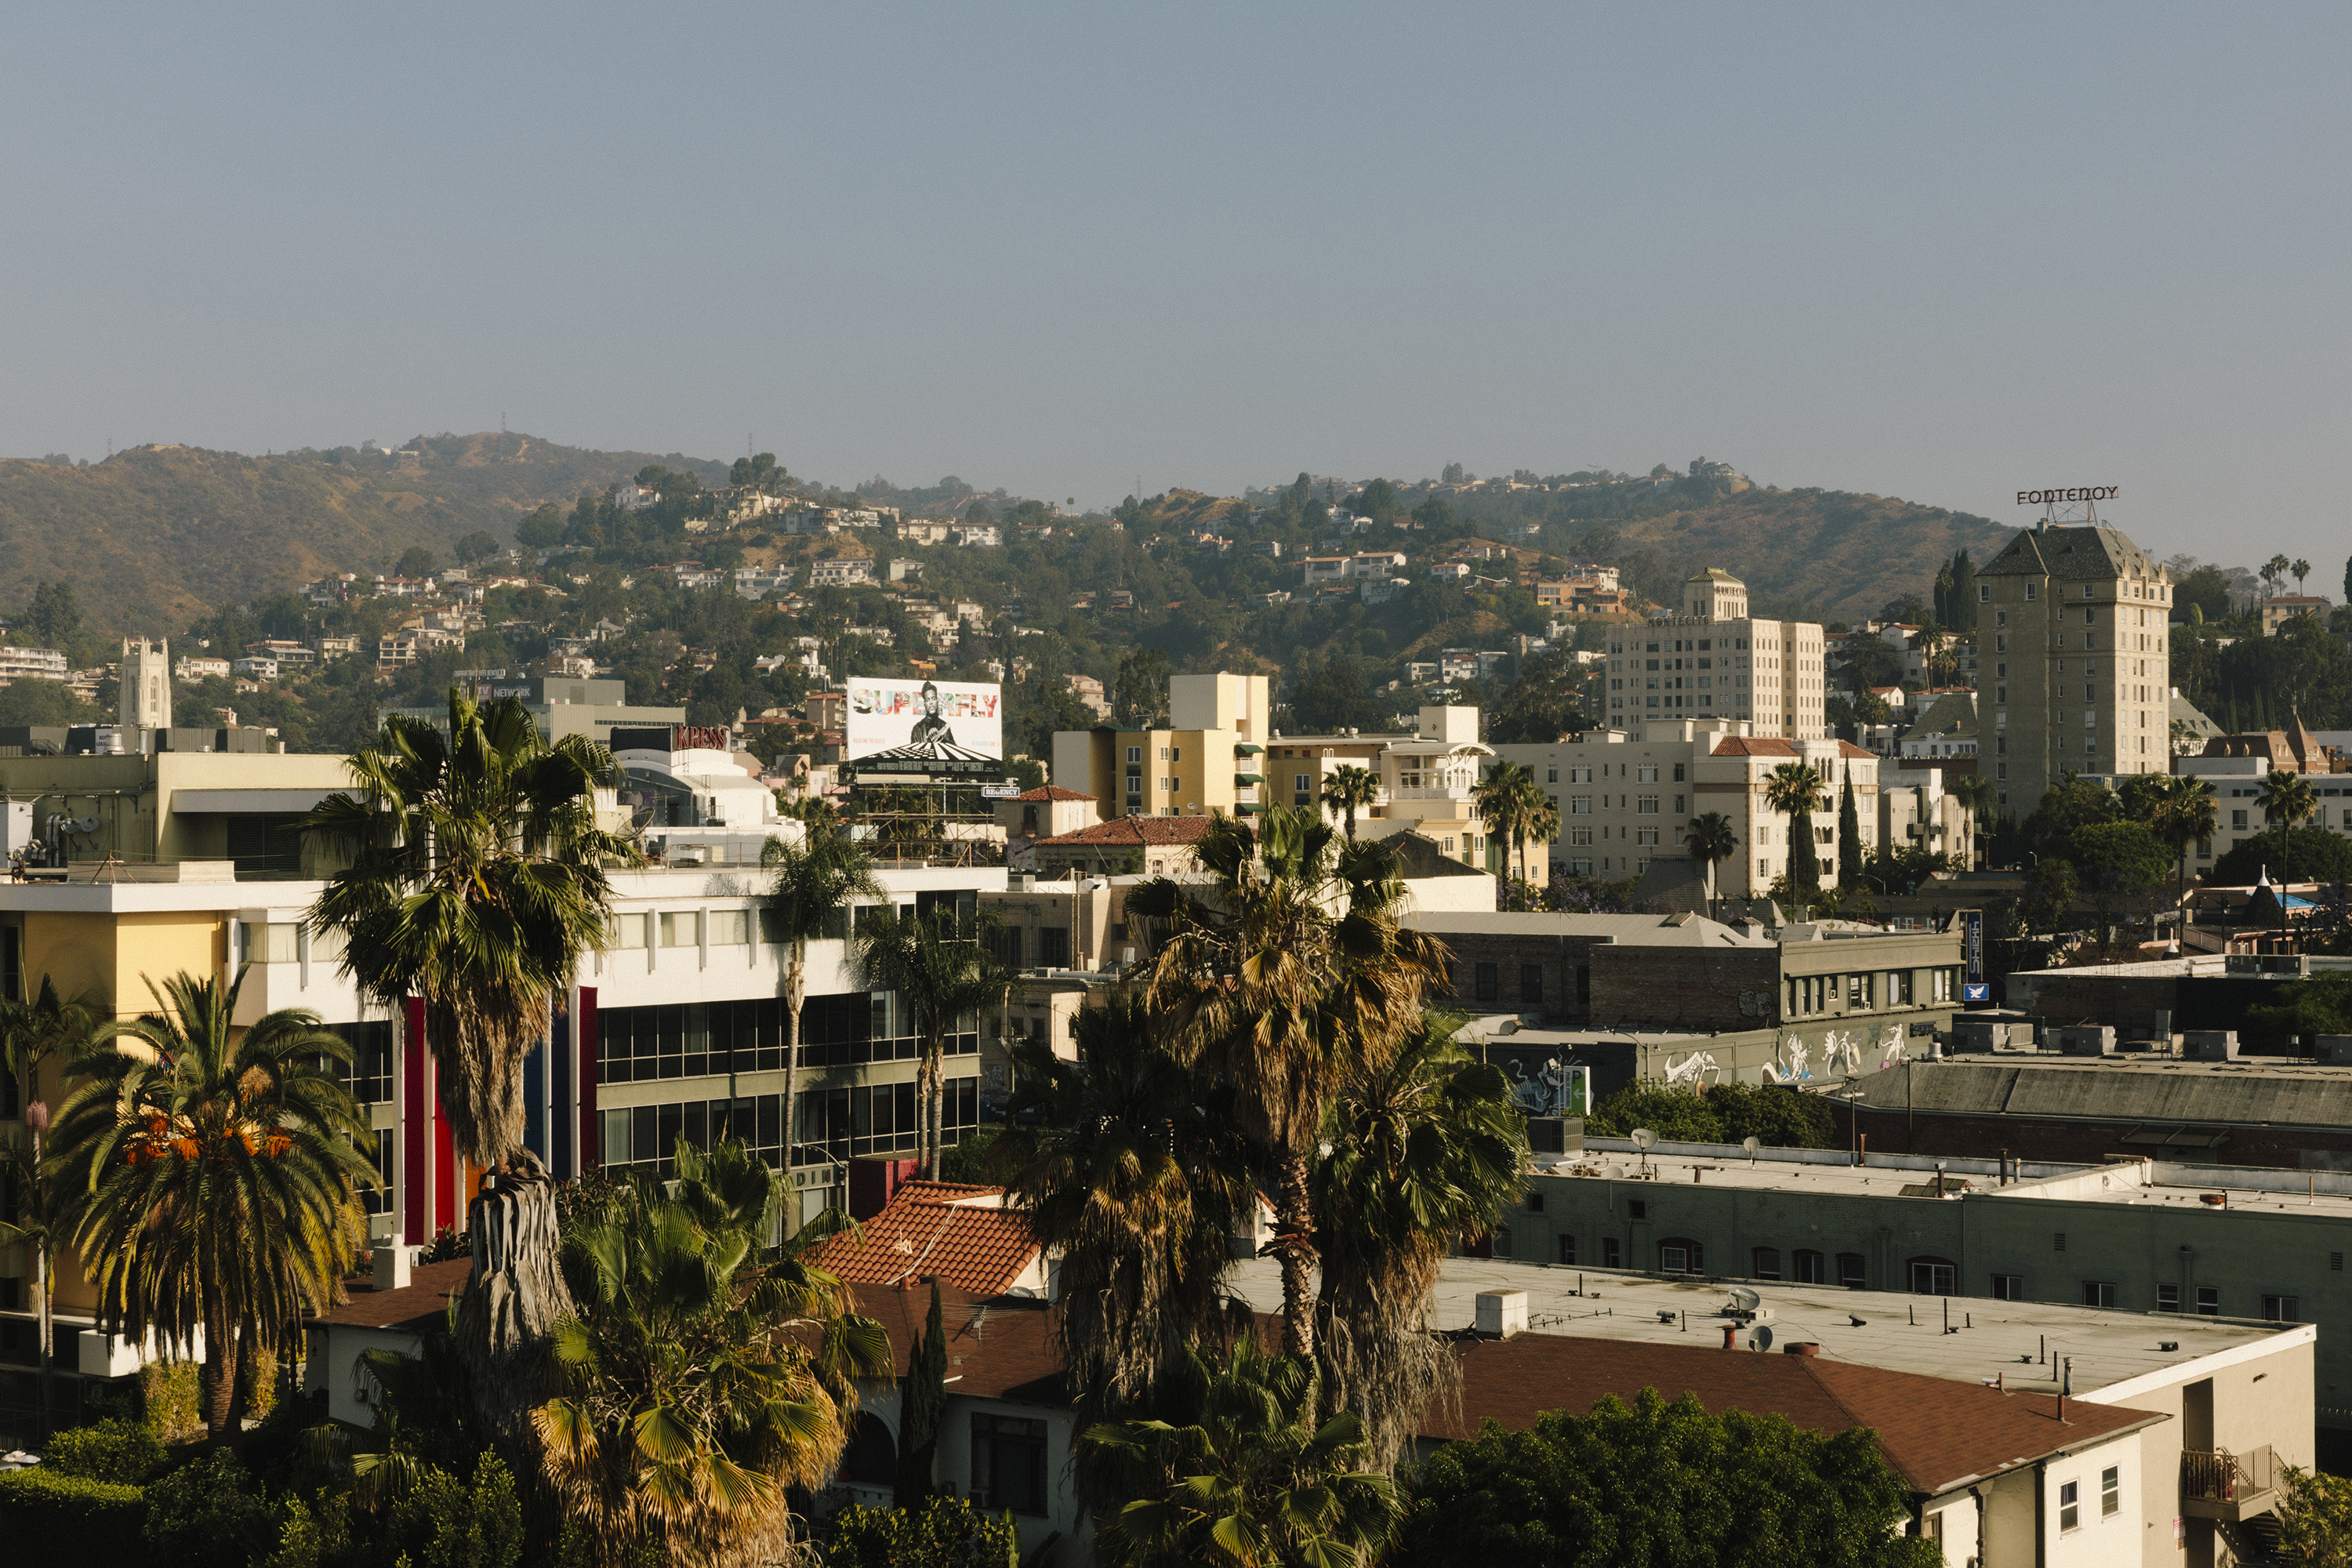 Overlooking the city of Los Angeles, view of downtown buildings, palm trees, with the hills and houses in the background.